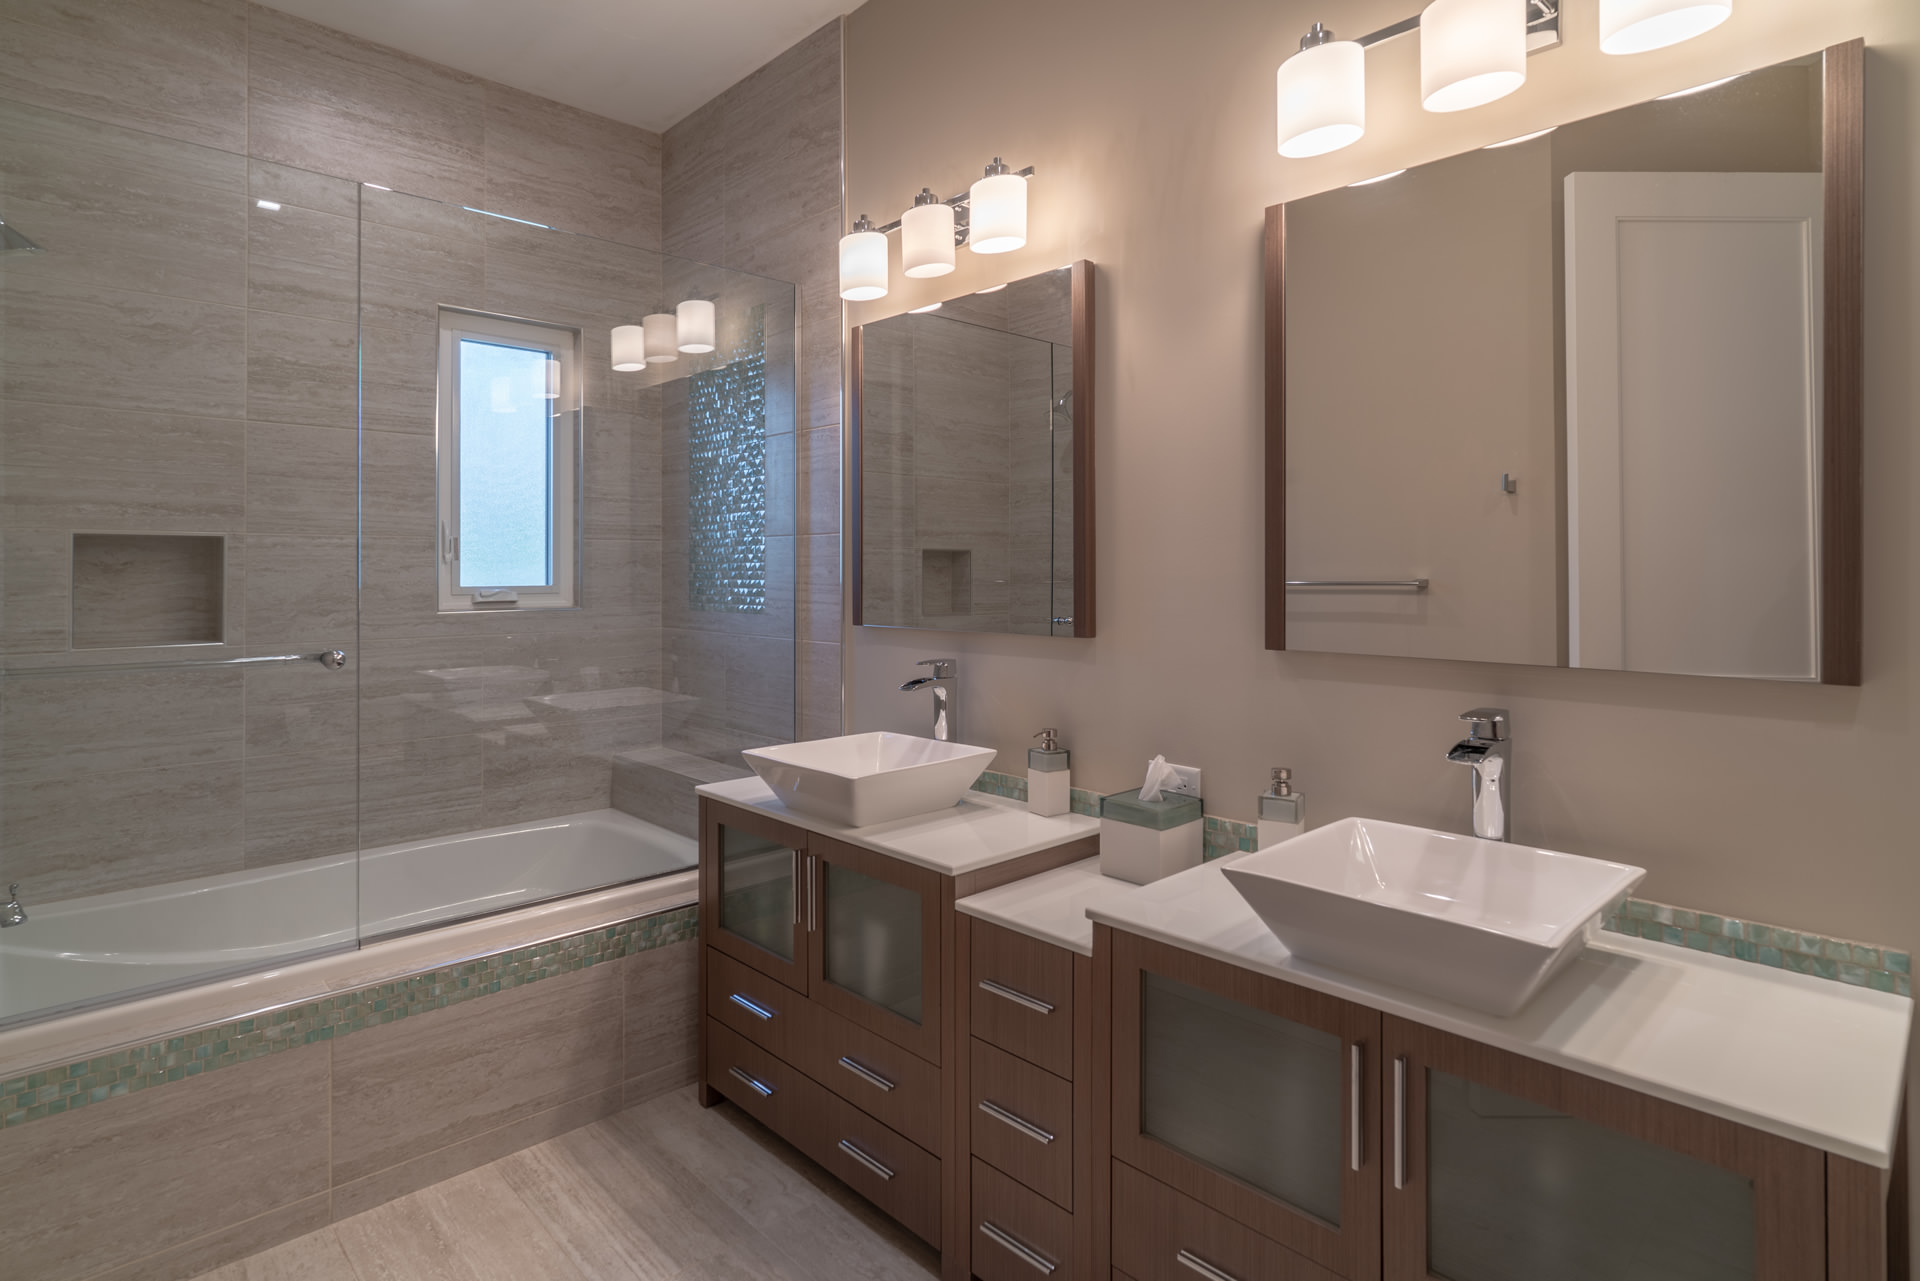 What to Consider for the Master Bath